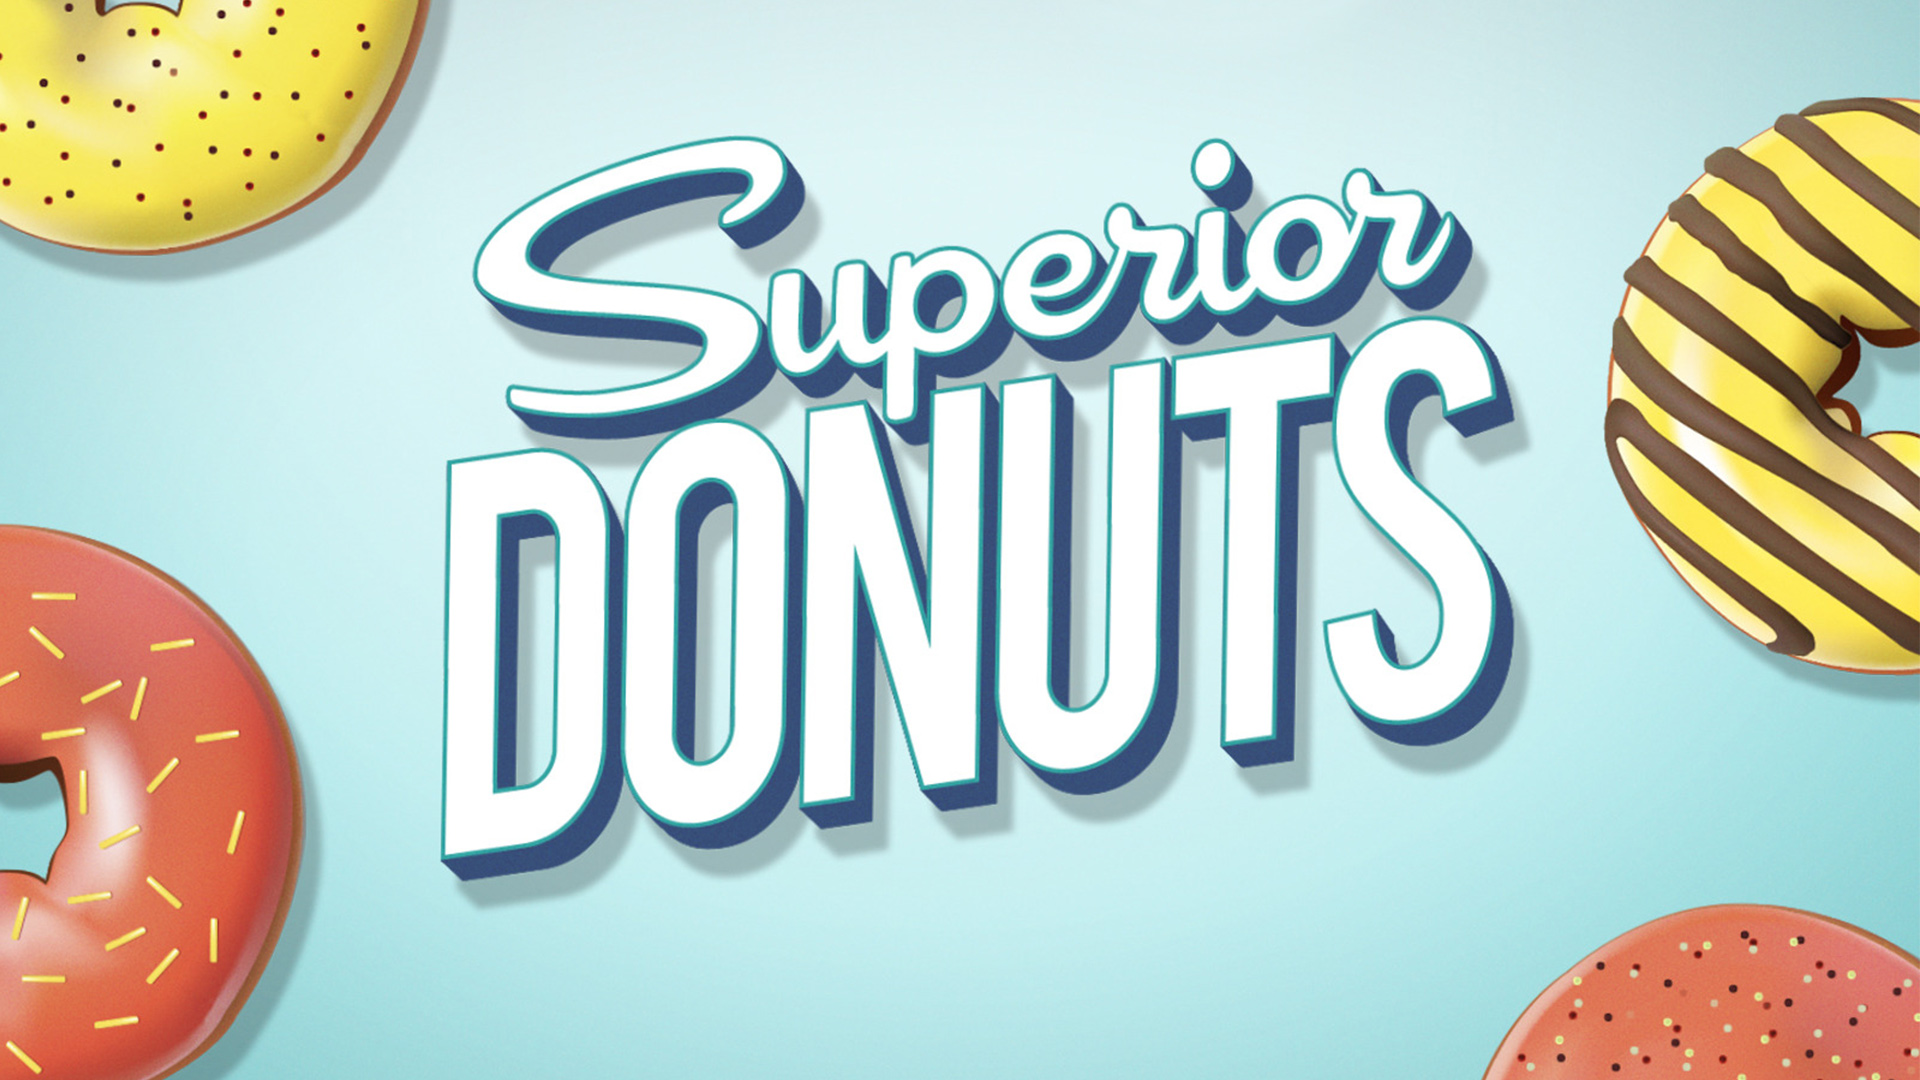 Superior Donuts, Season 1